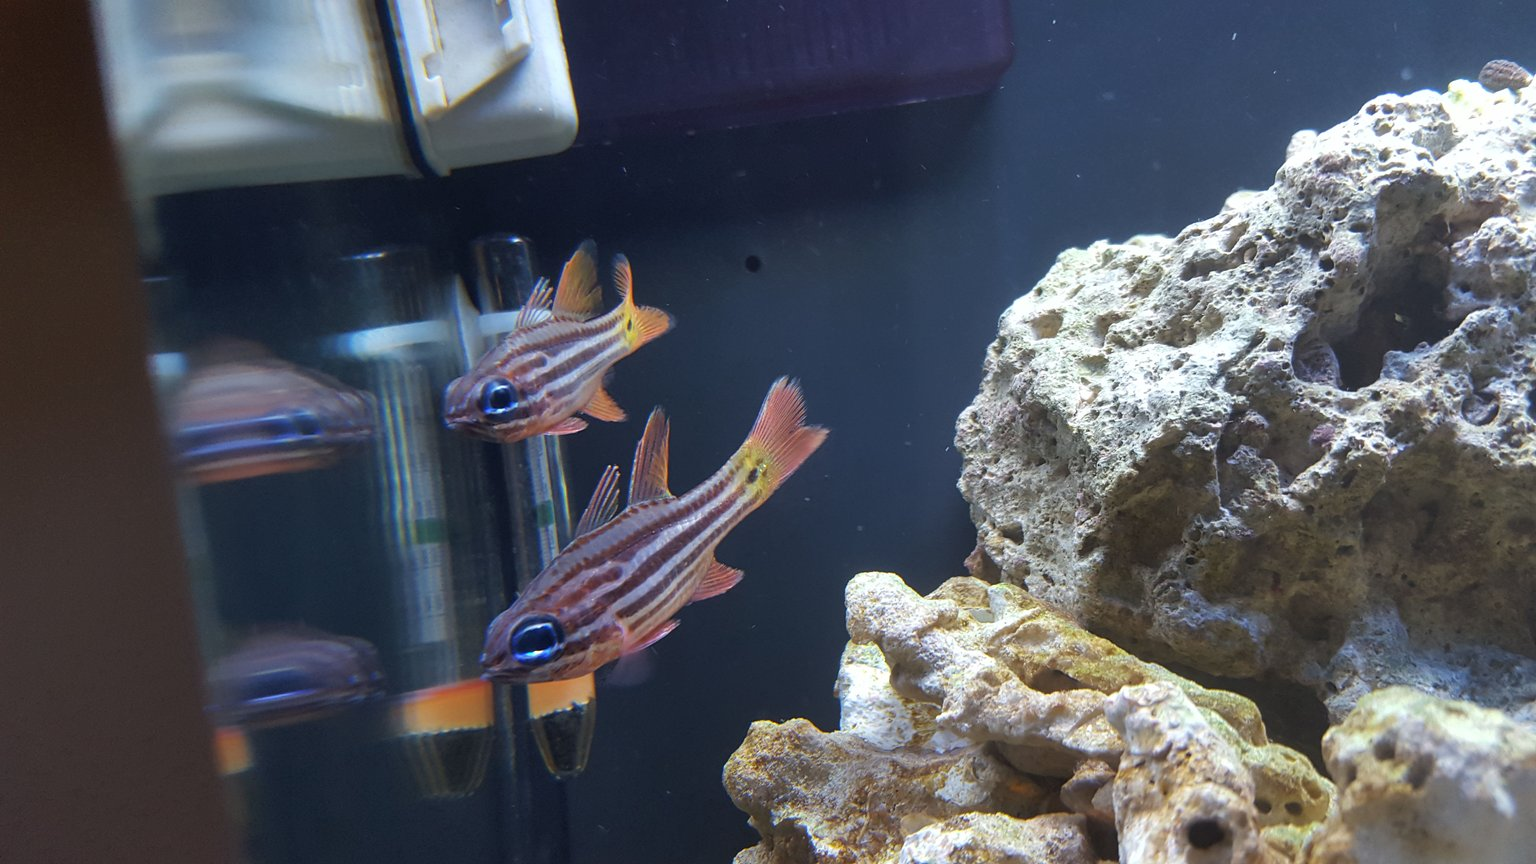 fish tank picture - Blue Eyed Candy Cane Cardinals